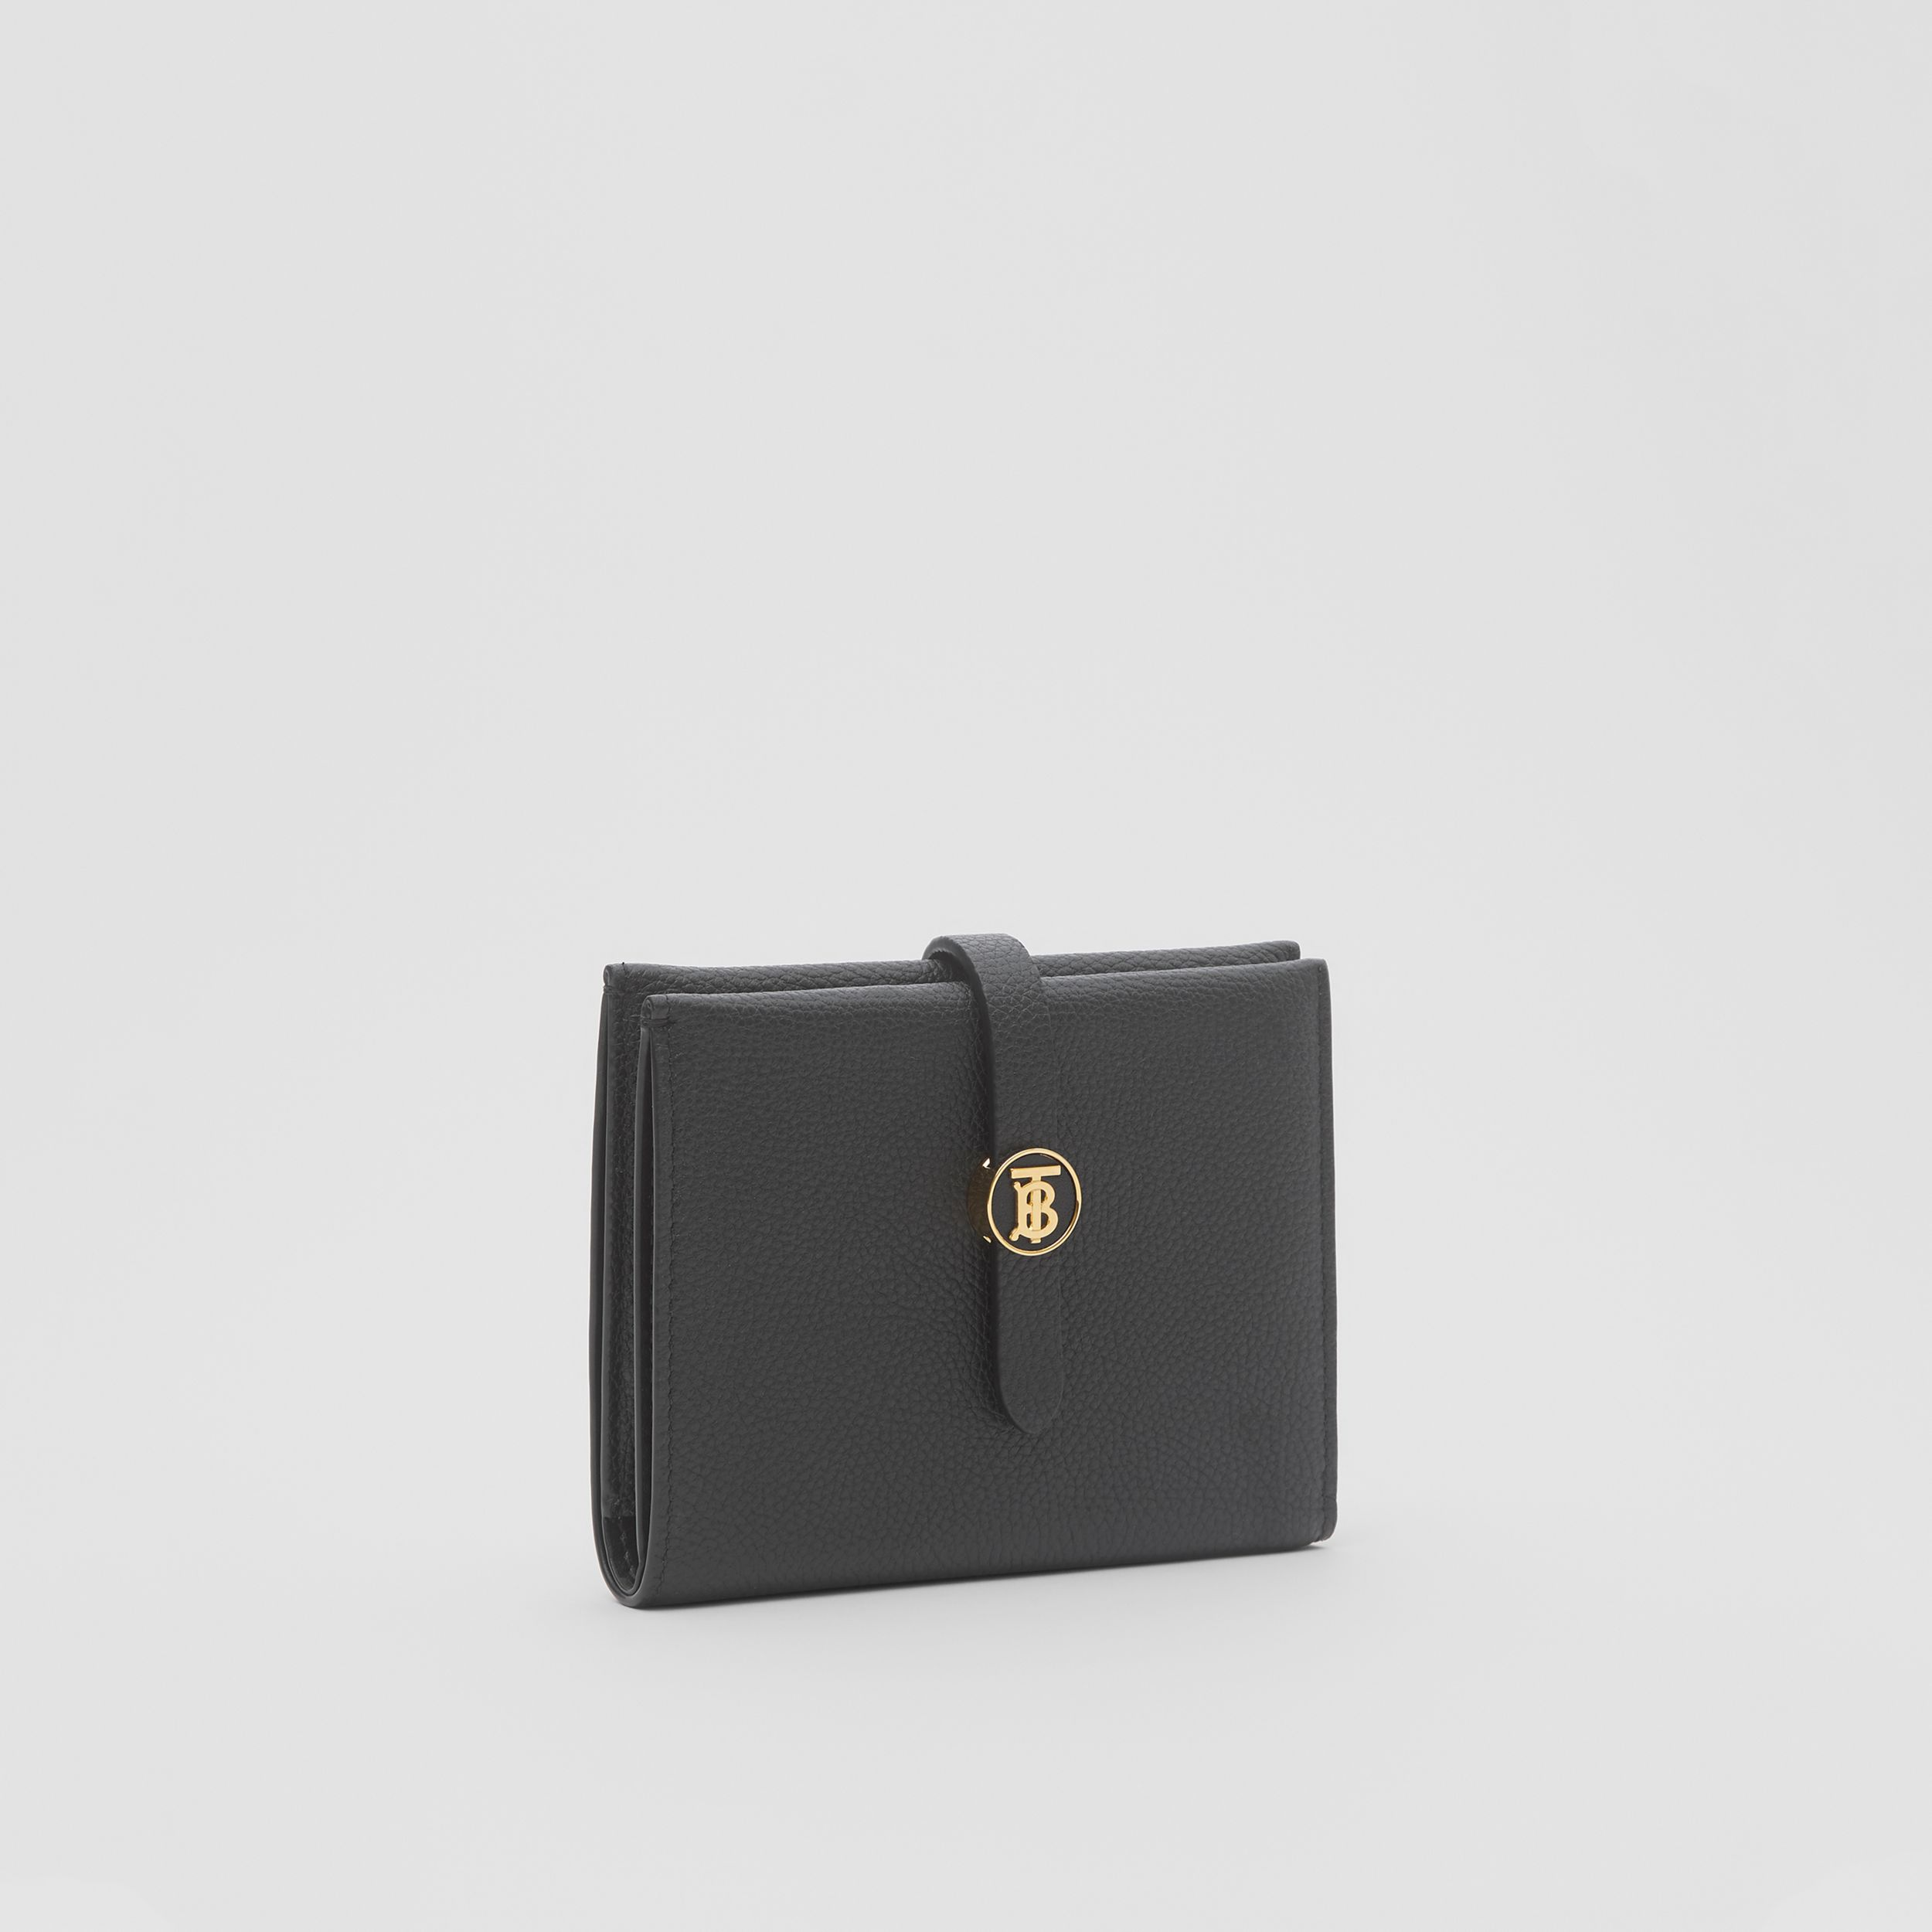 Monogram Motif Grainy Leather Folding Wallet in Black - Women | Burberry Hong Kong S.A.R. - 4